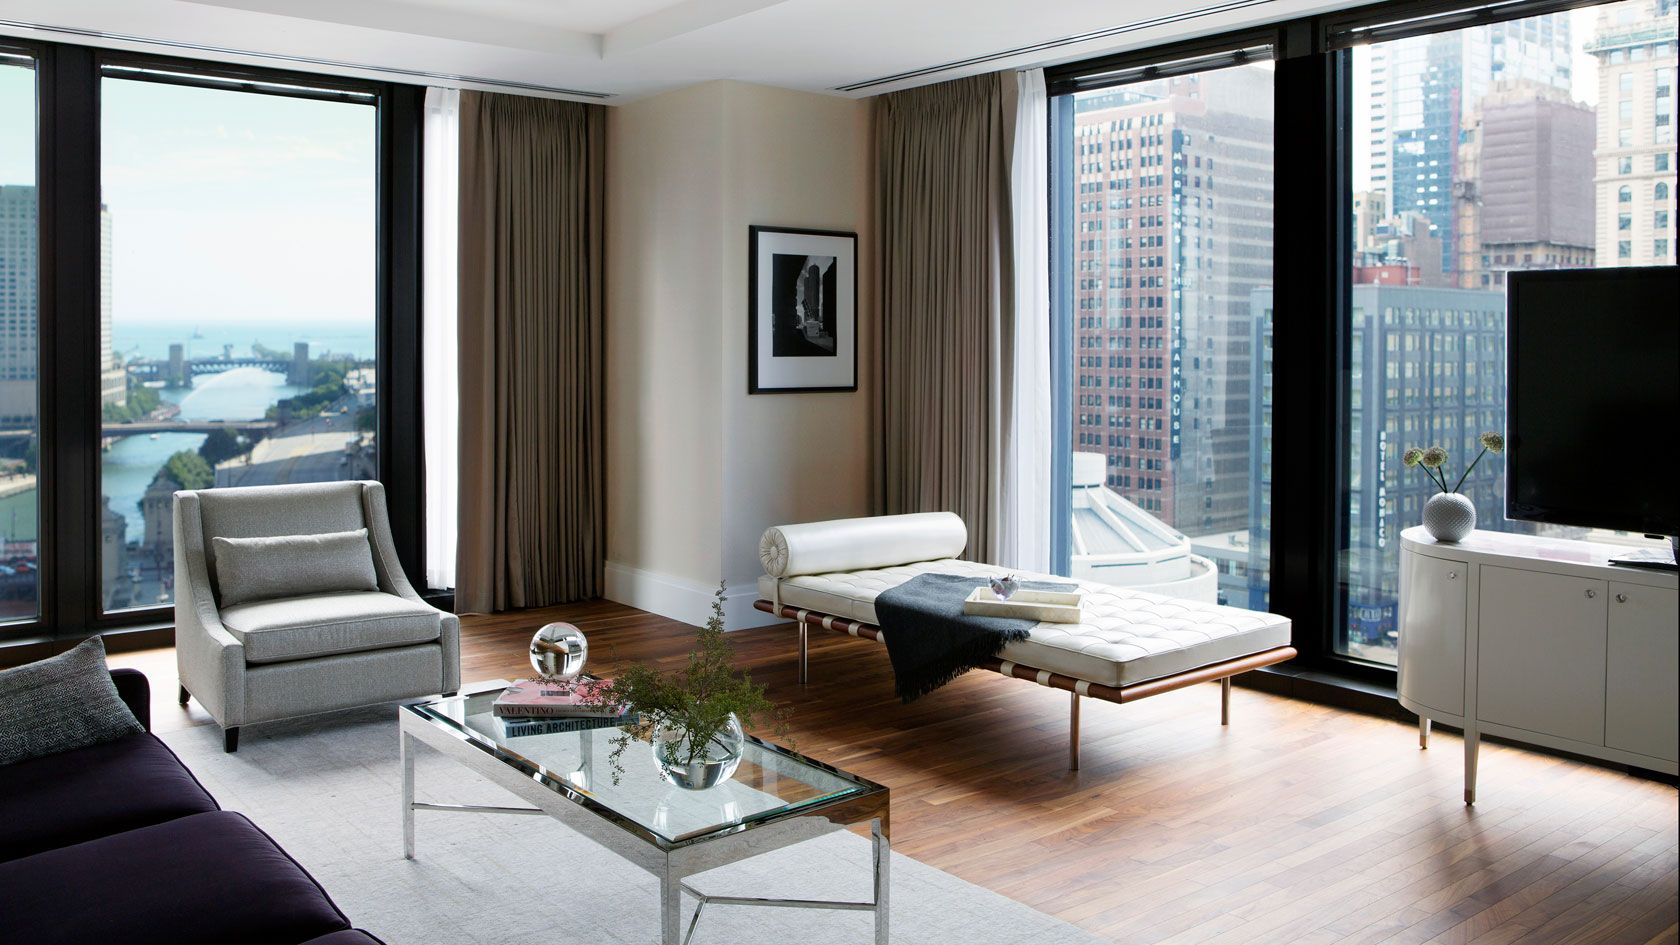 Clic River View Suite Chicago Luxury Hotel The Langham